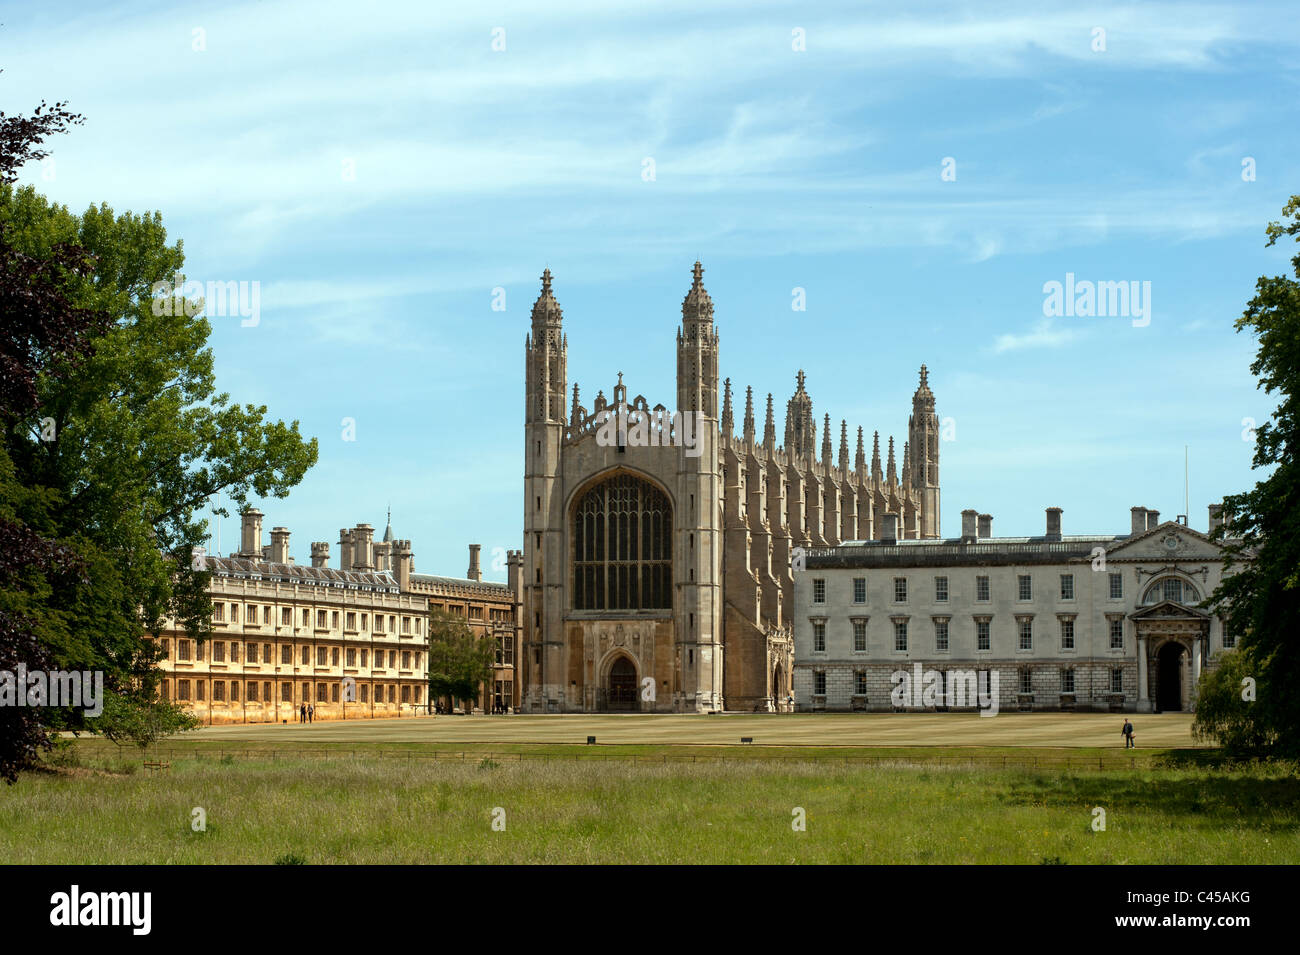 Cambridge, King's College Chapel, King's College, Cambridge University, England. 1 June 2011. Photograph - Stock Image